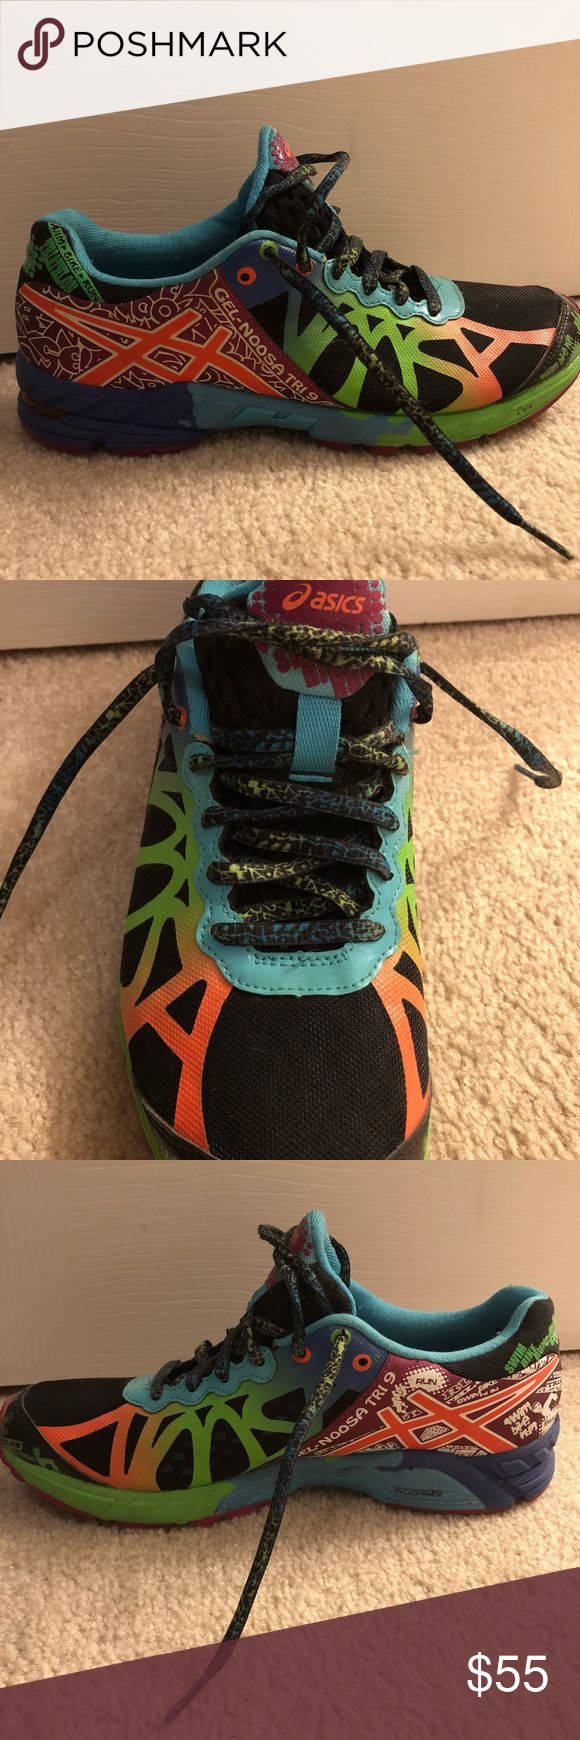 ASICS gel noosa Tori-9's women's running shoes ASICS gel noosa Tri-9s neon running shoes. PERFECT condition, not much wear. Worn in gym a handful of times. So comfy. Asics Shoes Athletic Shoes